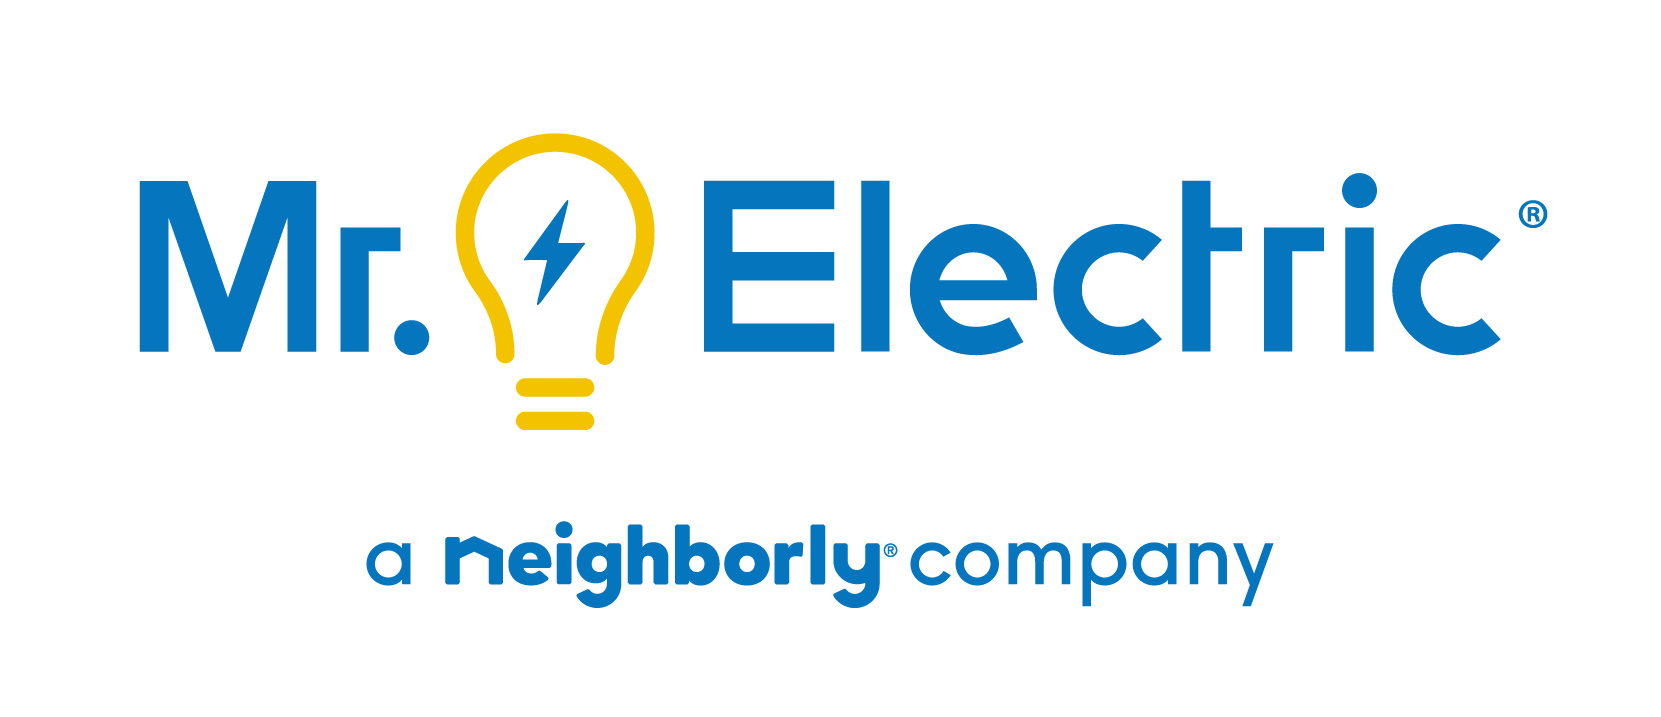 Mr. Electric of Greenville